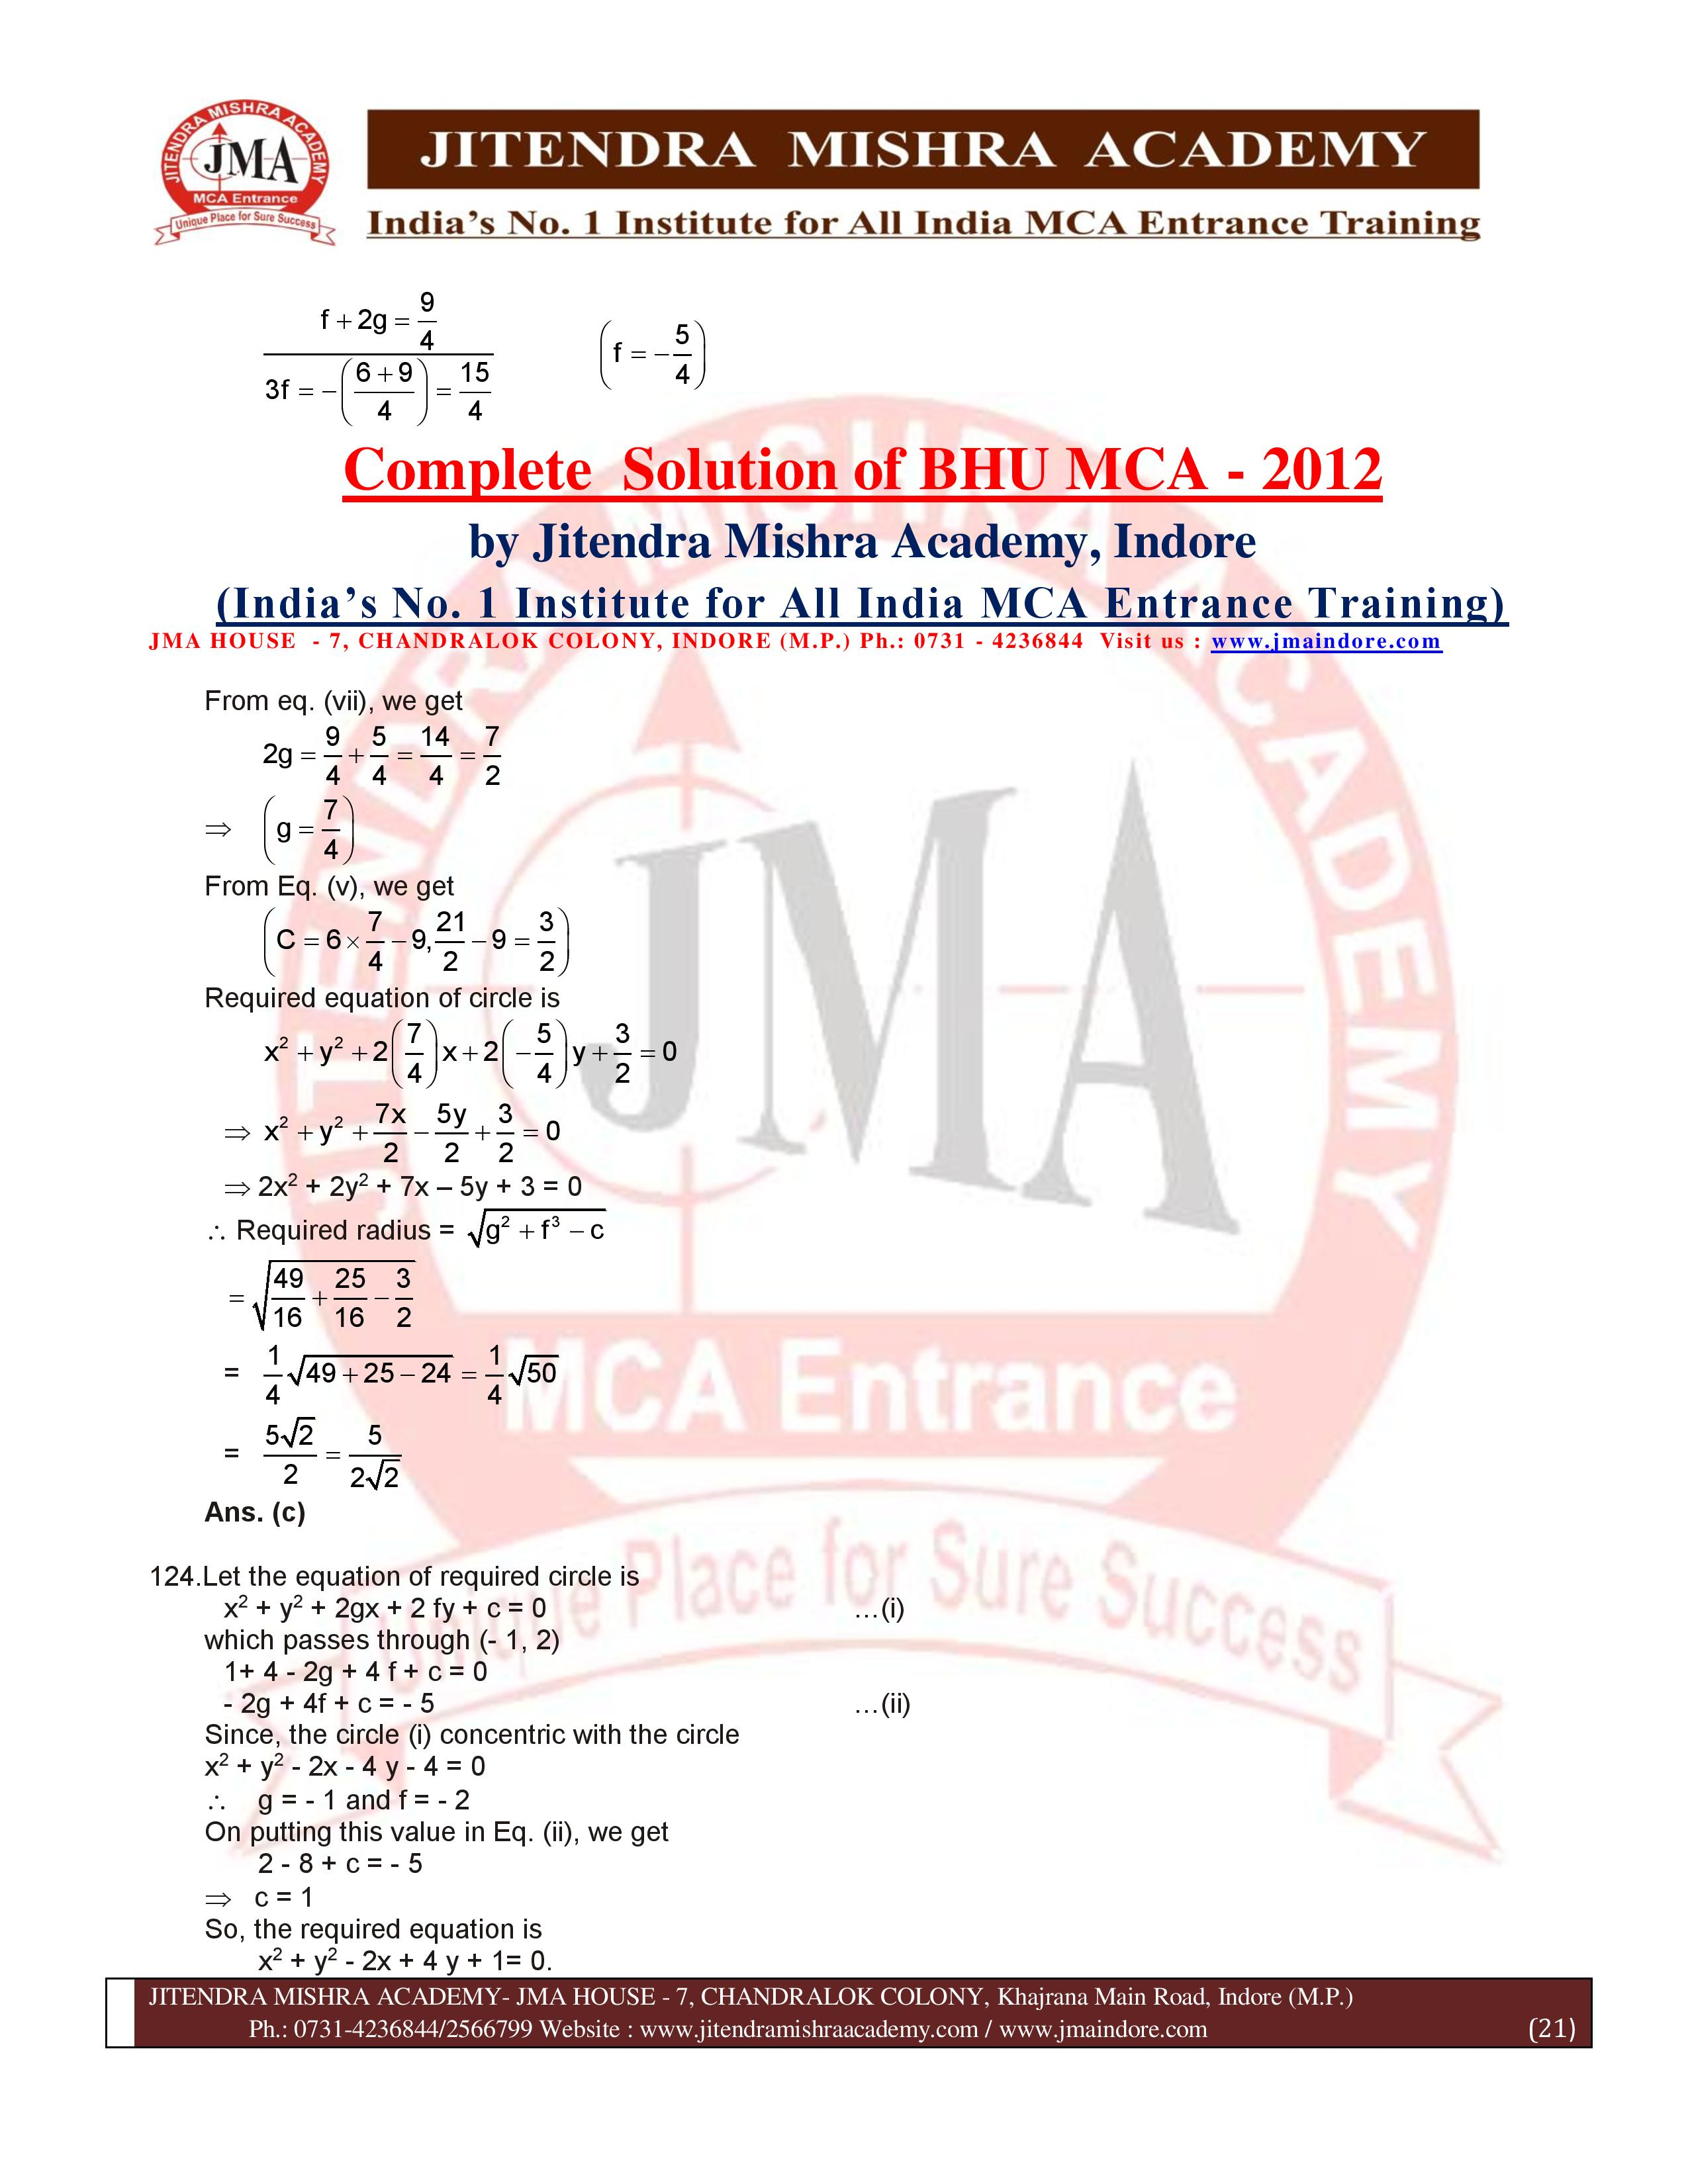 BHU 2012 SOLUTION (SET - 2) (07.07.16)-page-021